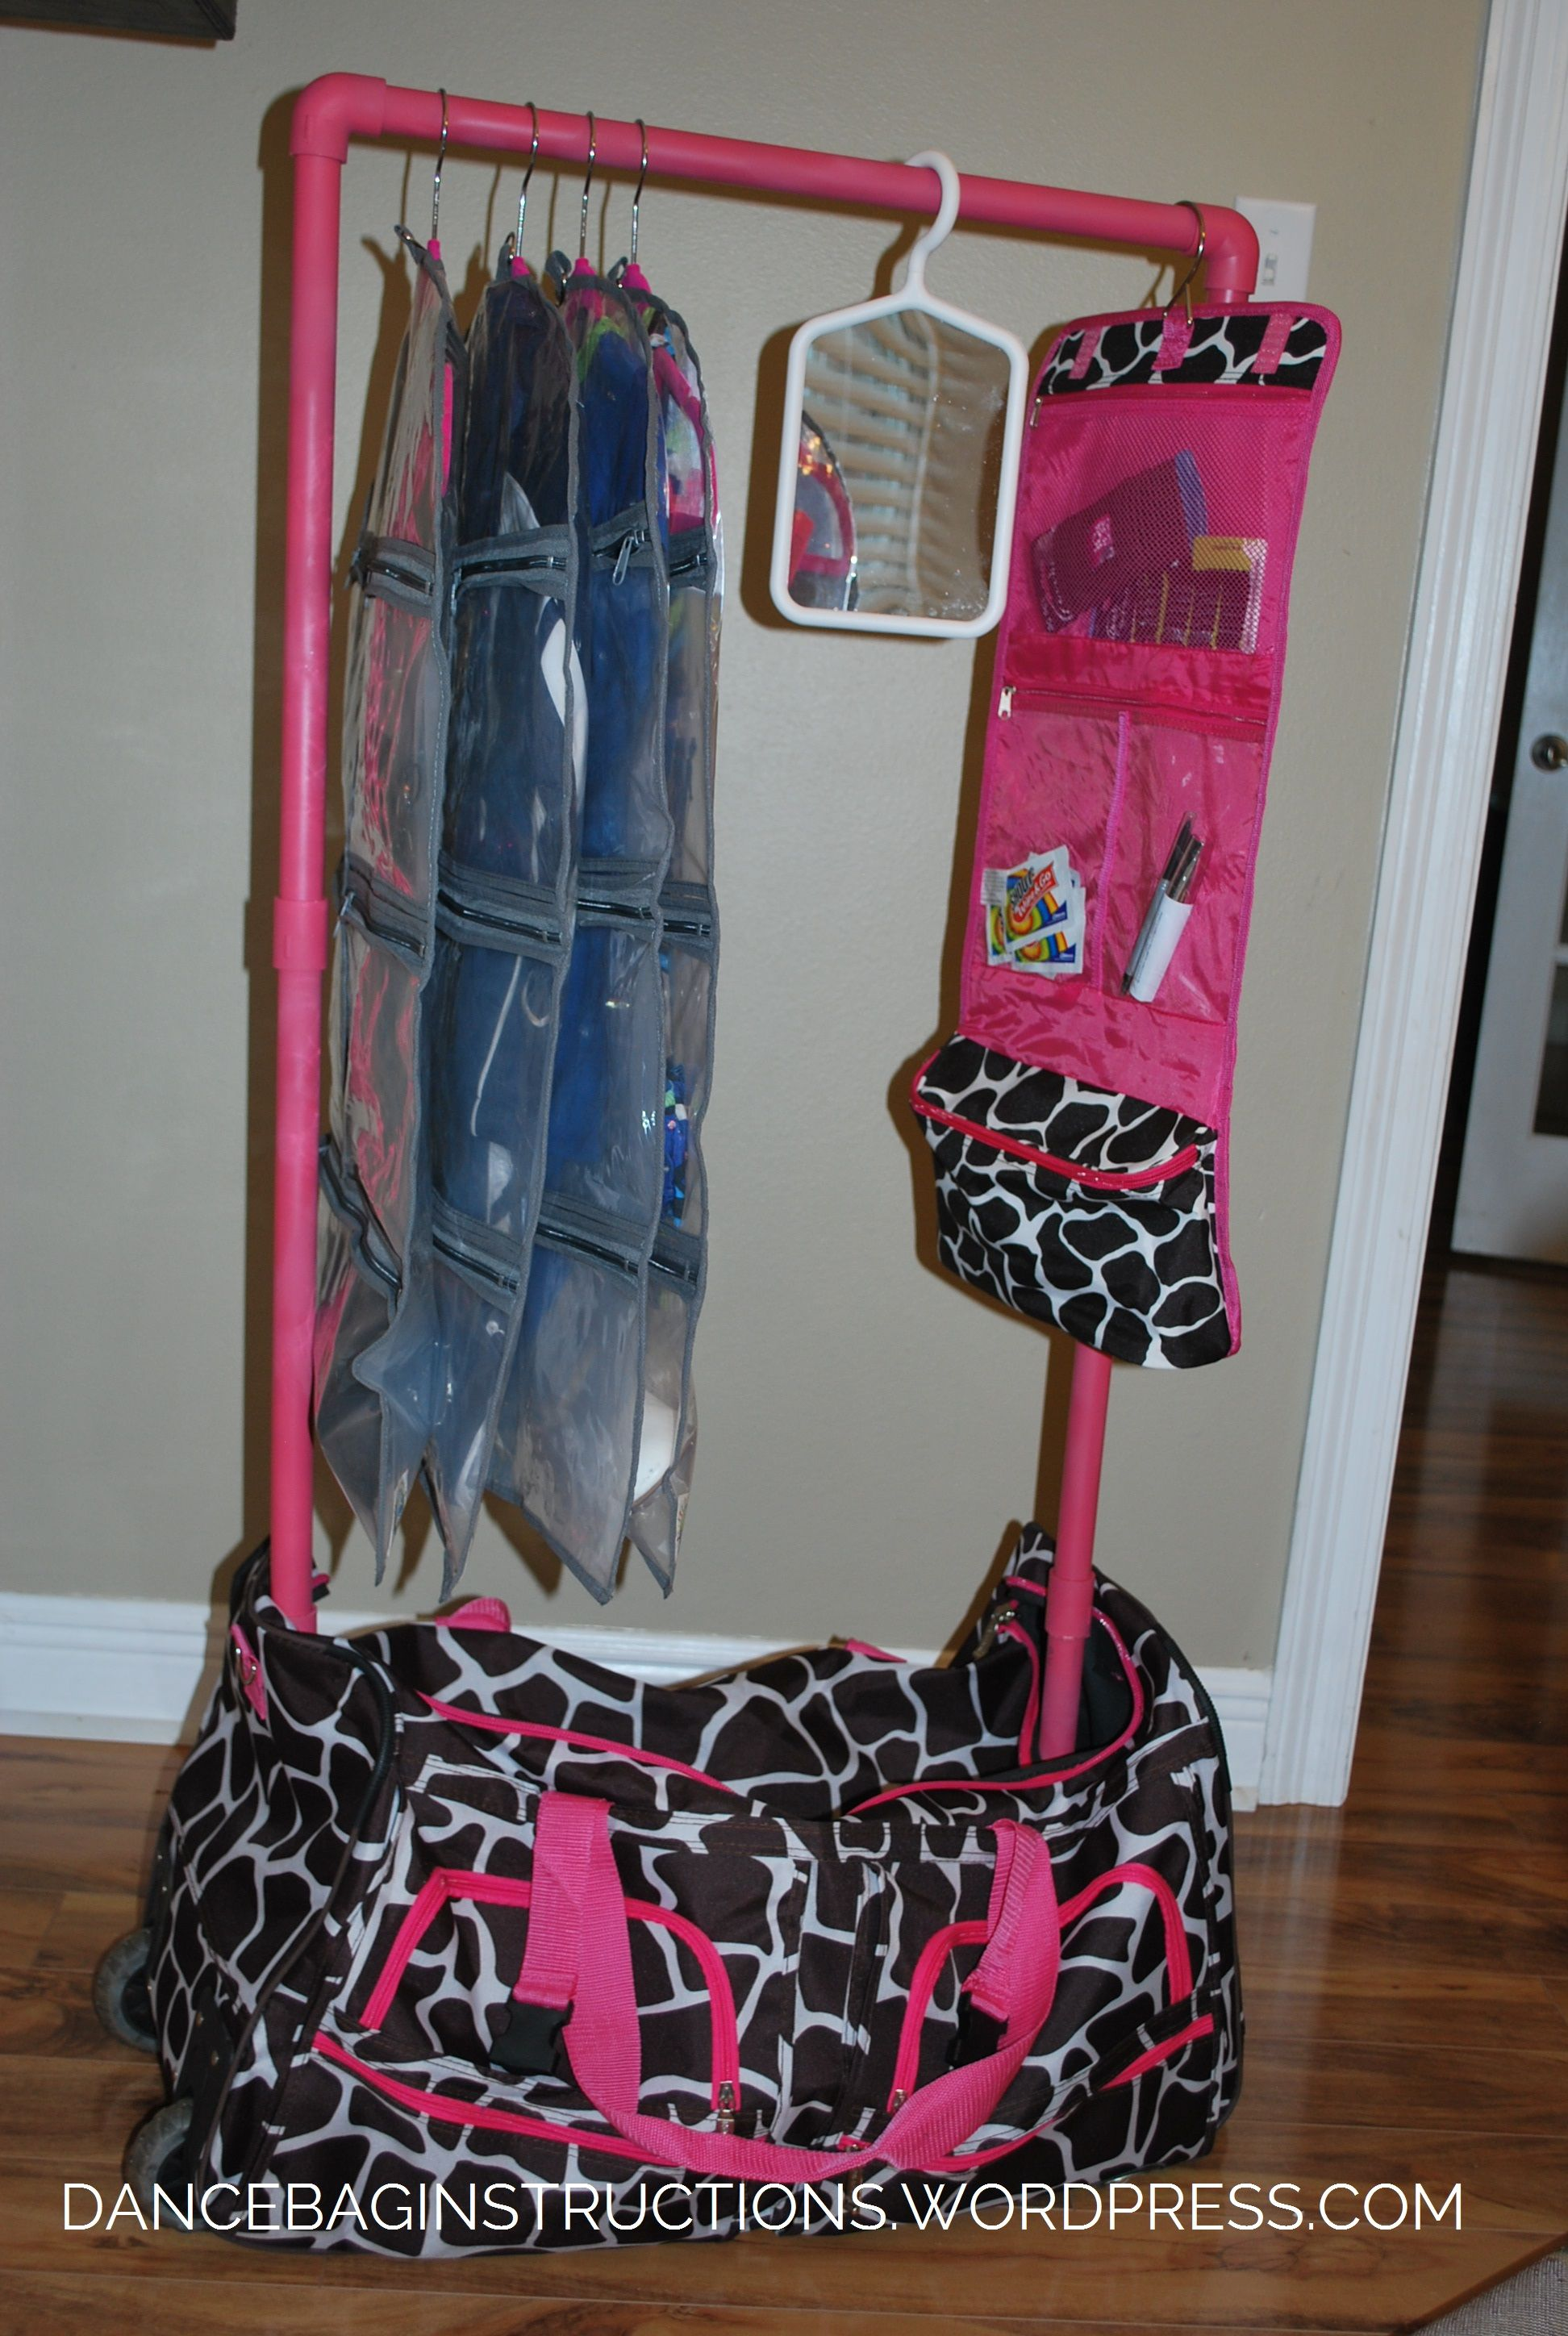 Dance Bag With Garment Rack Beauteous How To Make Your Own Rolling Dance Bag With Garment Rack  Dancing Design Ideas